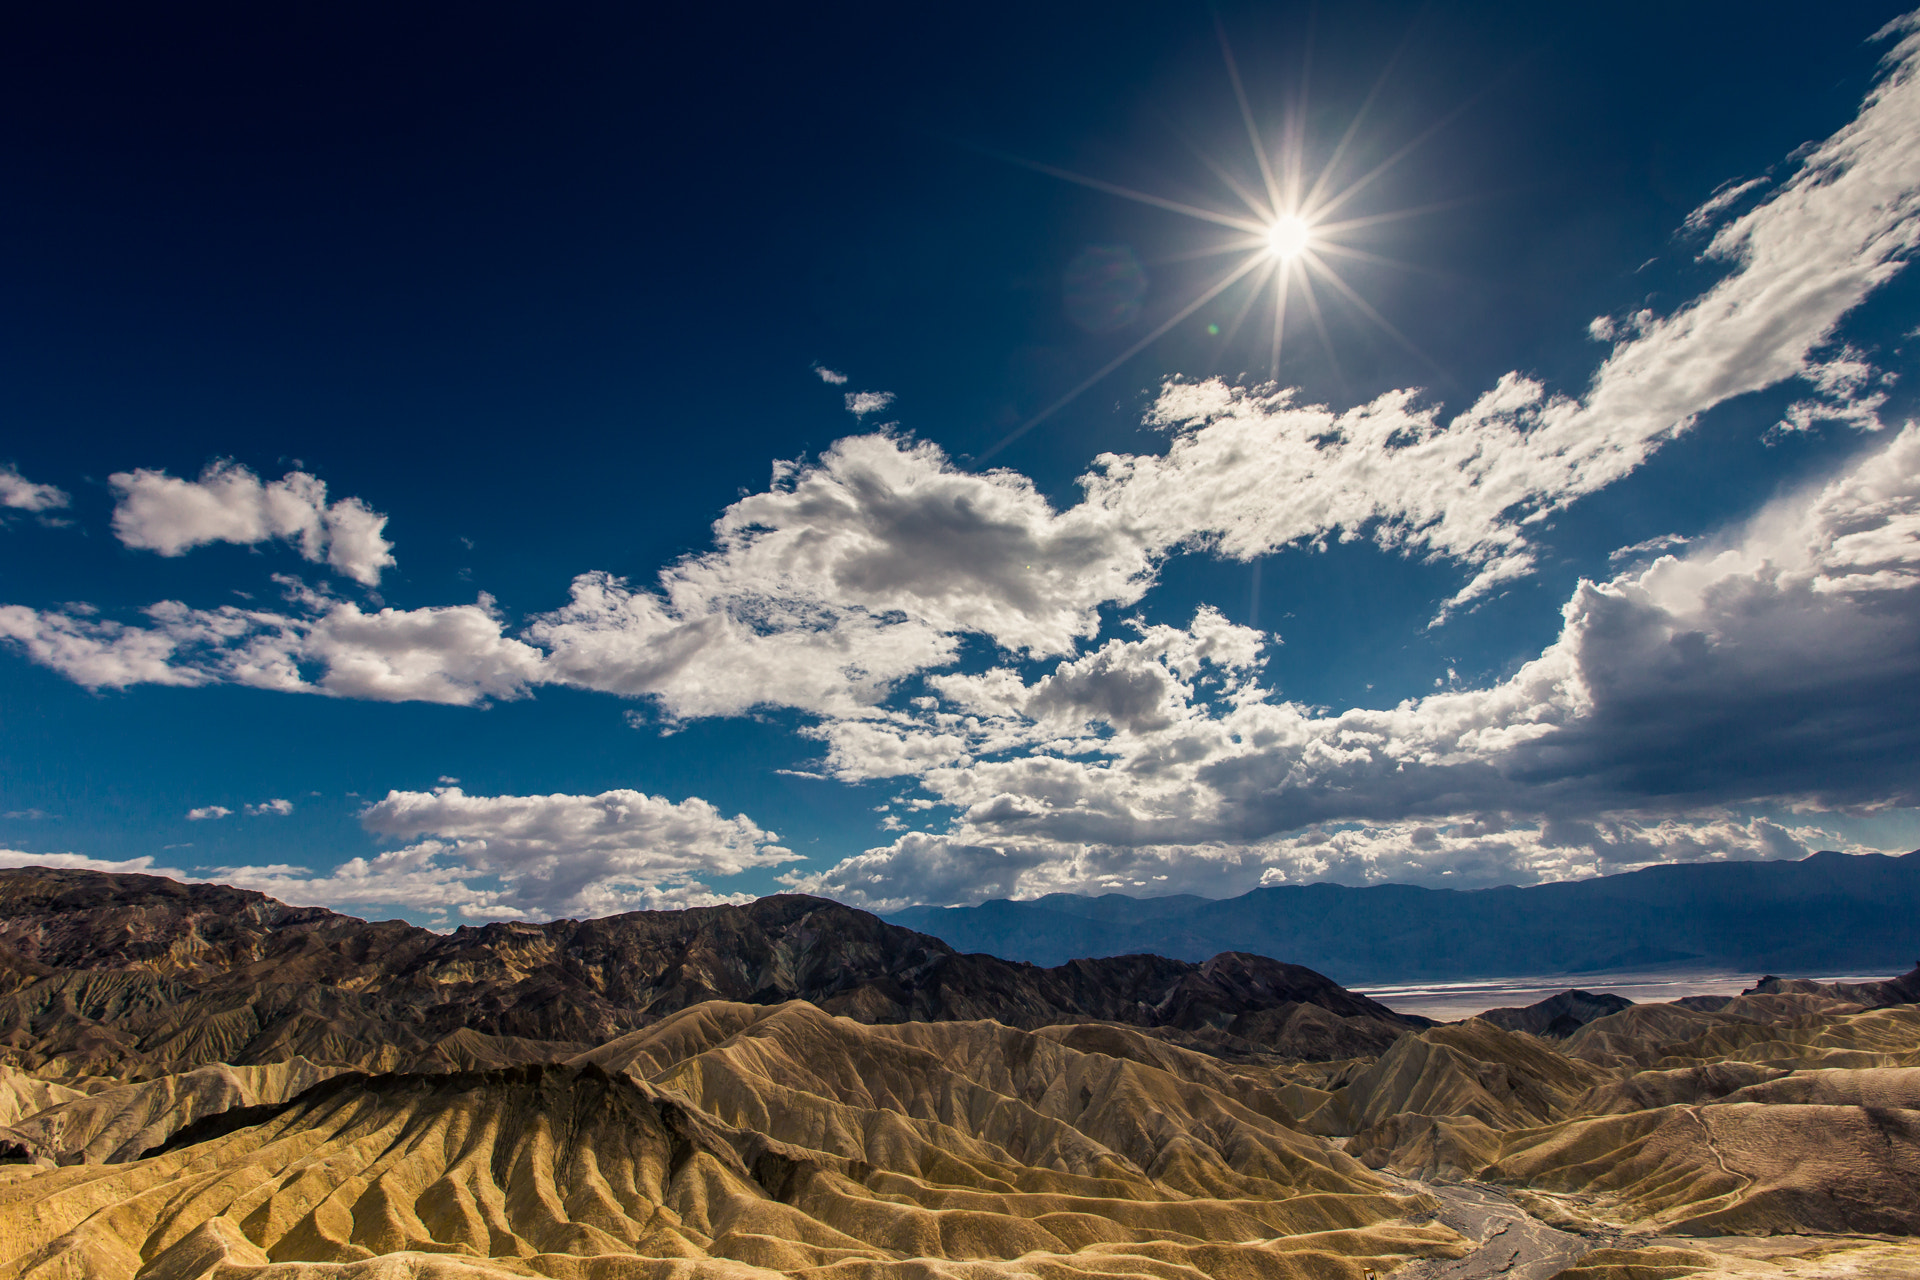 Photograph Zabriskie Point by Jacques Szymanski on 500px